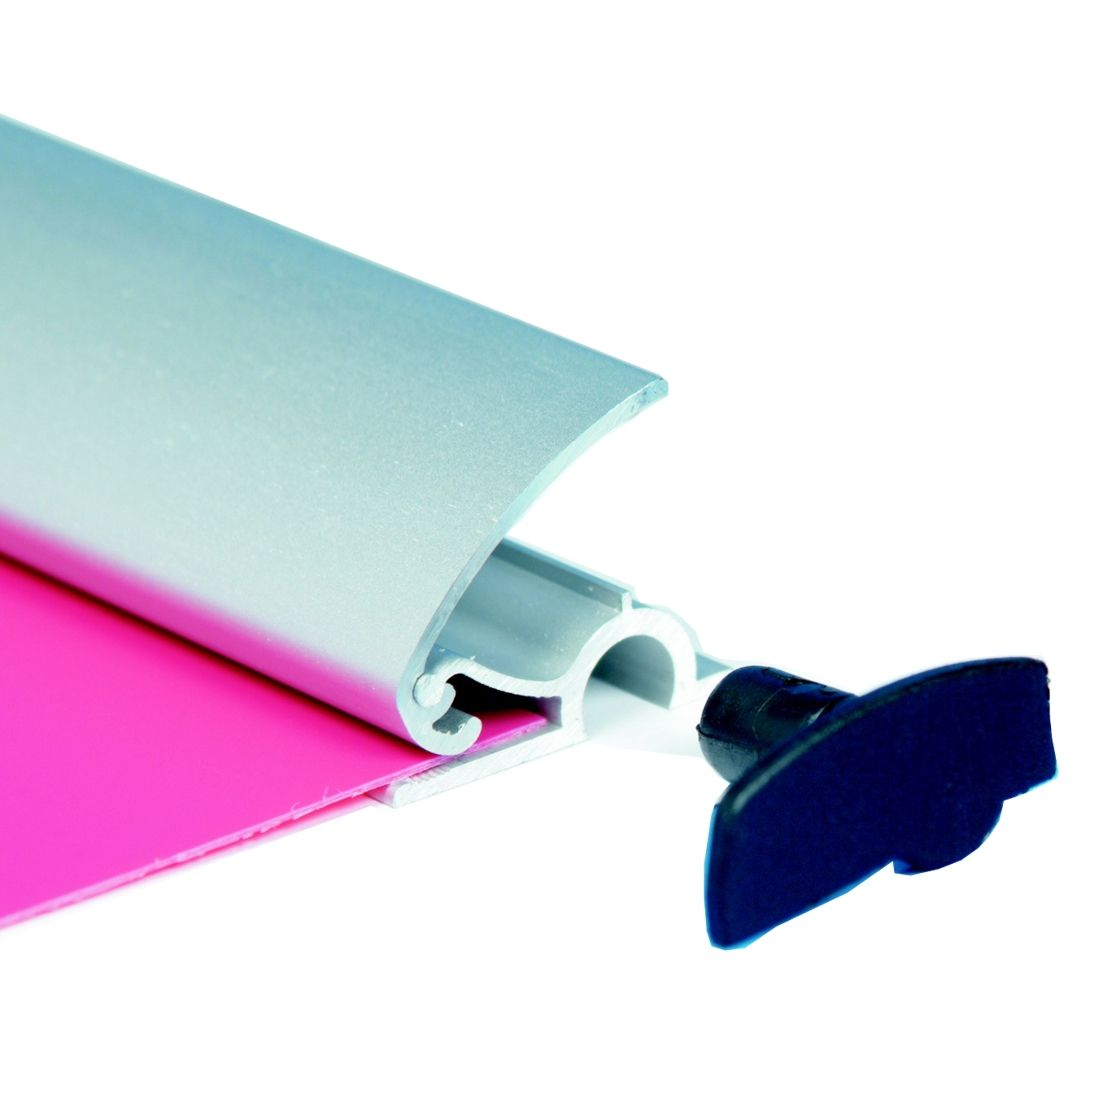 Poster Clamps - banner hanging bars | Sign-Holders.co.uk